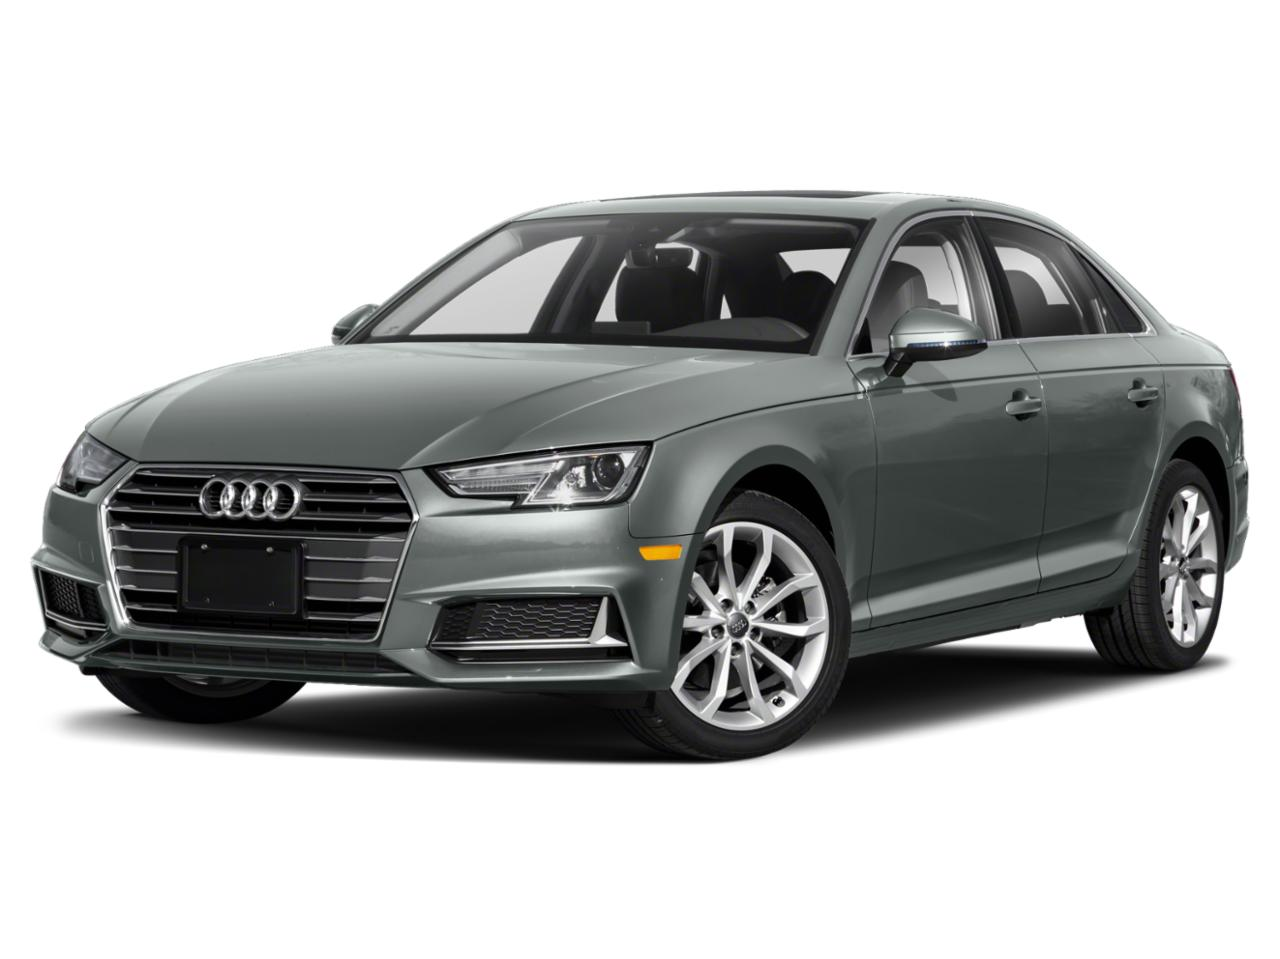 2019 Audi A4 Vehicle Photo in State College, PA 16801